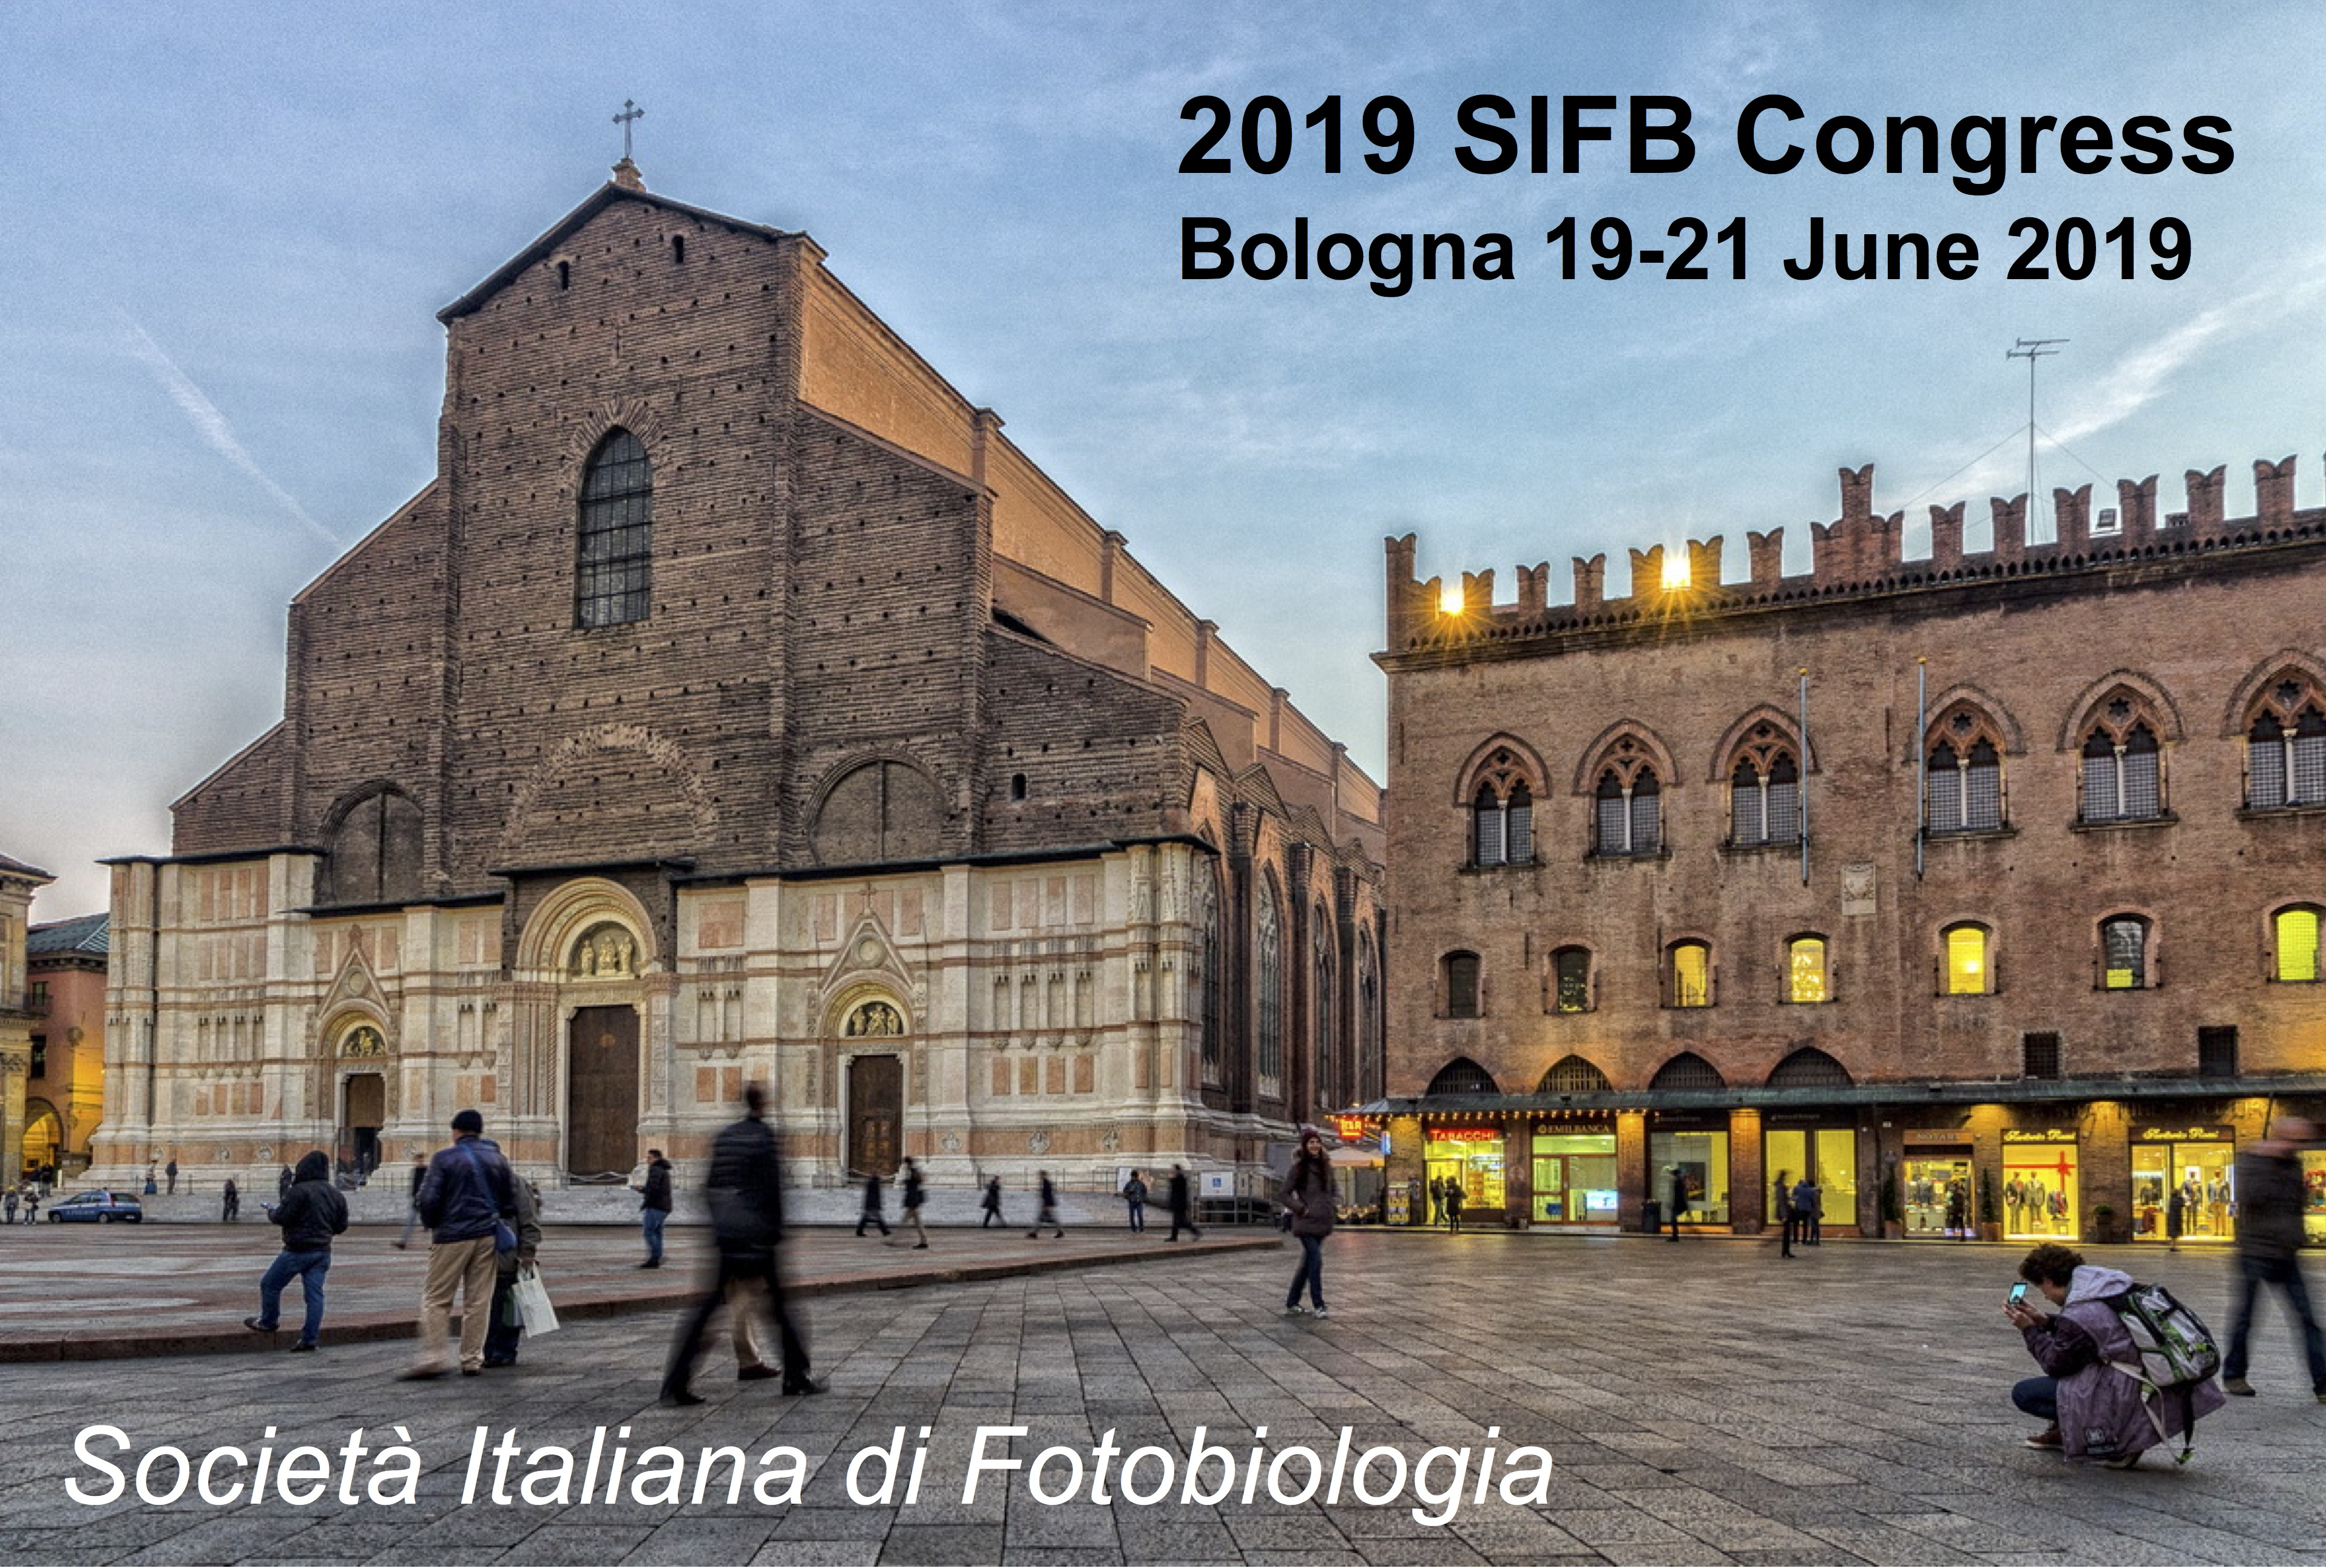 2019 SIFB Congress